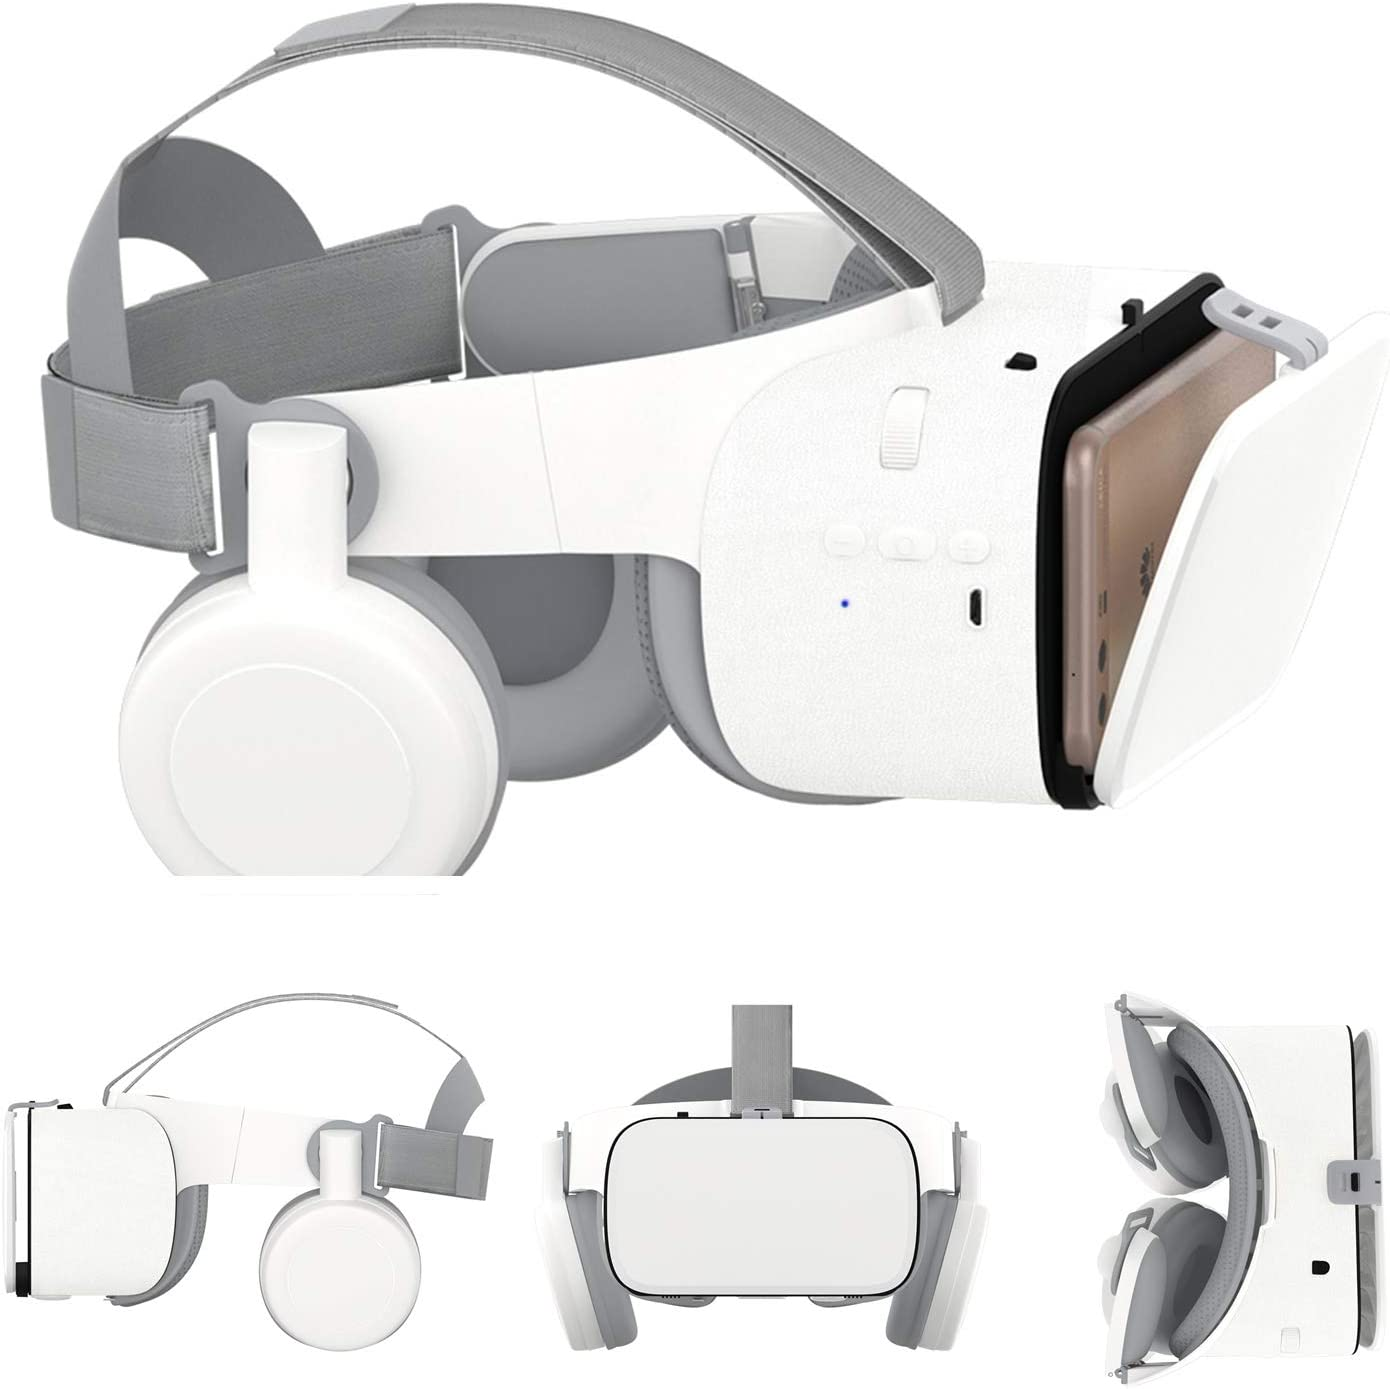 3D VR Glasses/Headset, Virtual Reality Headset Cellphone 3D Movie/Game Viewer [Newest]+Bluetooth Headphones for iPhone 12 Mini 11 Pro Max XS XR X 8 7 6S Plus Samsung Galaxy S20 S10 S9 S8 S7 Edge Plus